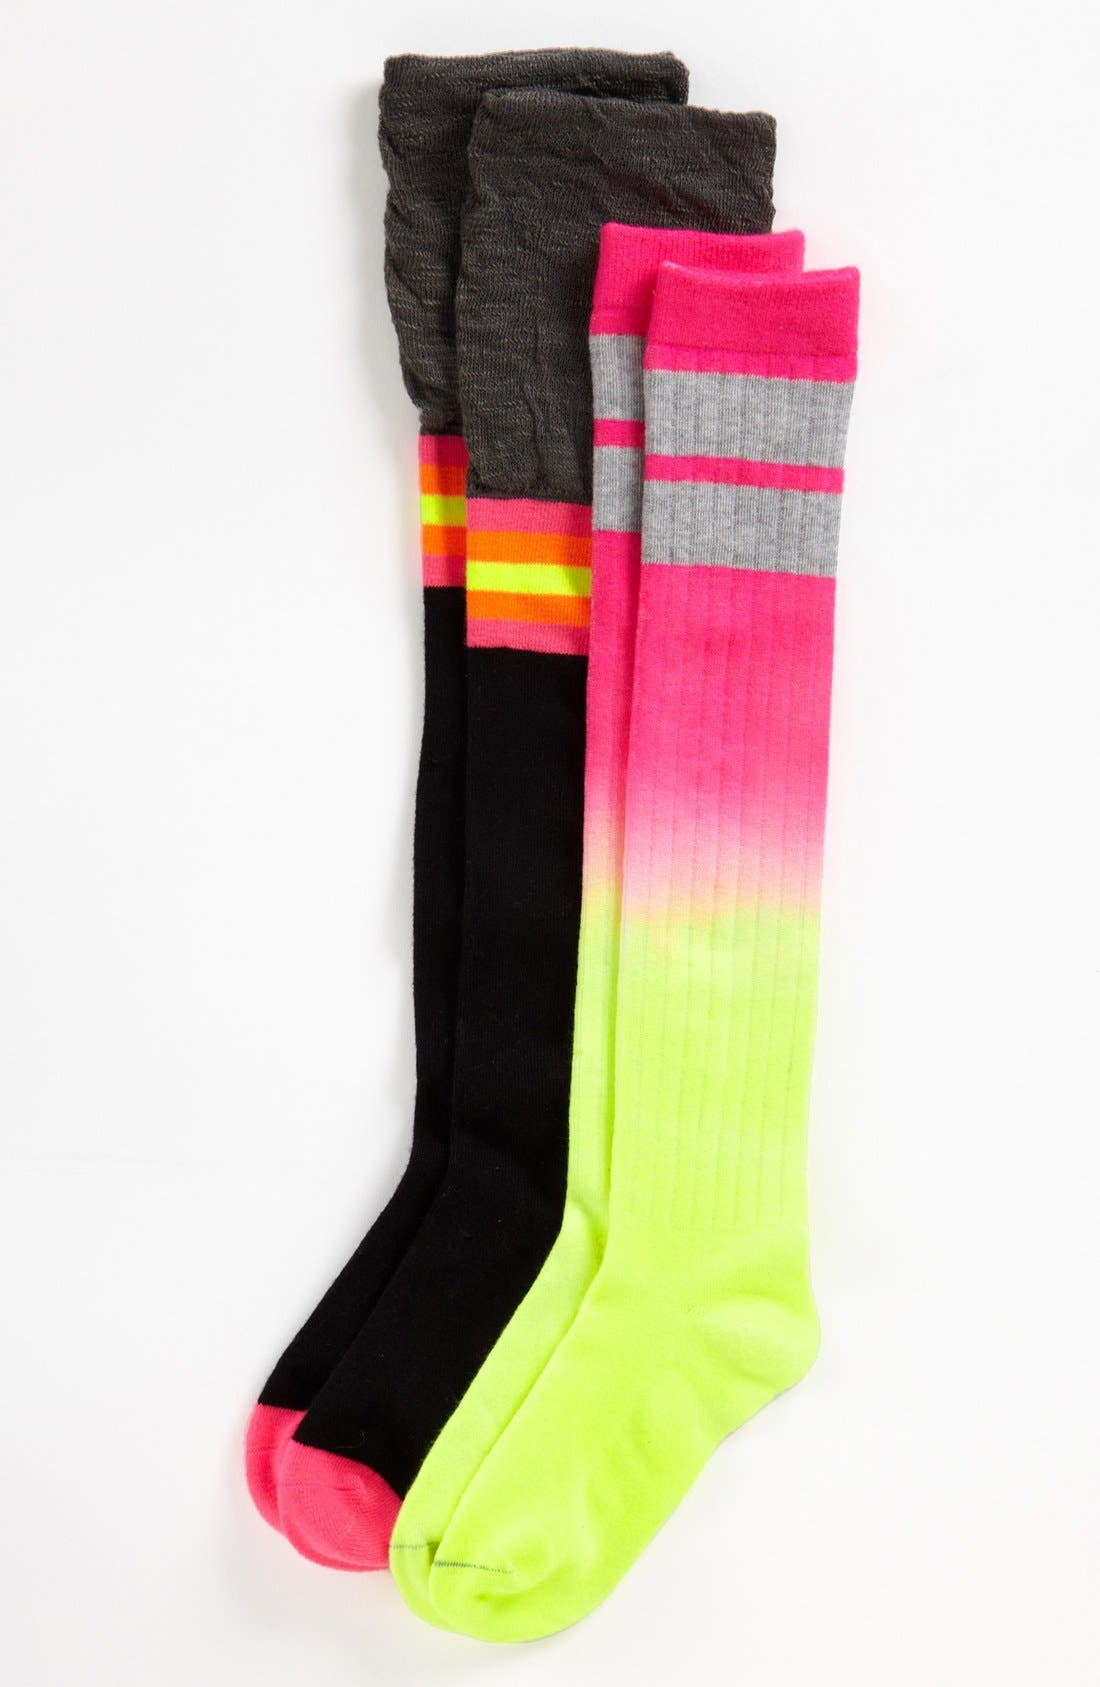 Alternate Image 1 Selected - Nordstrom 'Marled Dip' Knee High Socks (2-Pack) (Toddler, Little Girls & Big Girls)